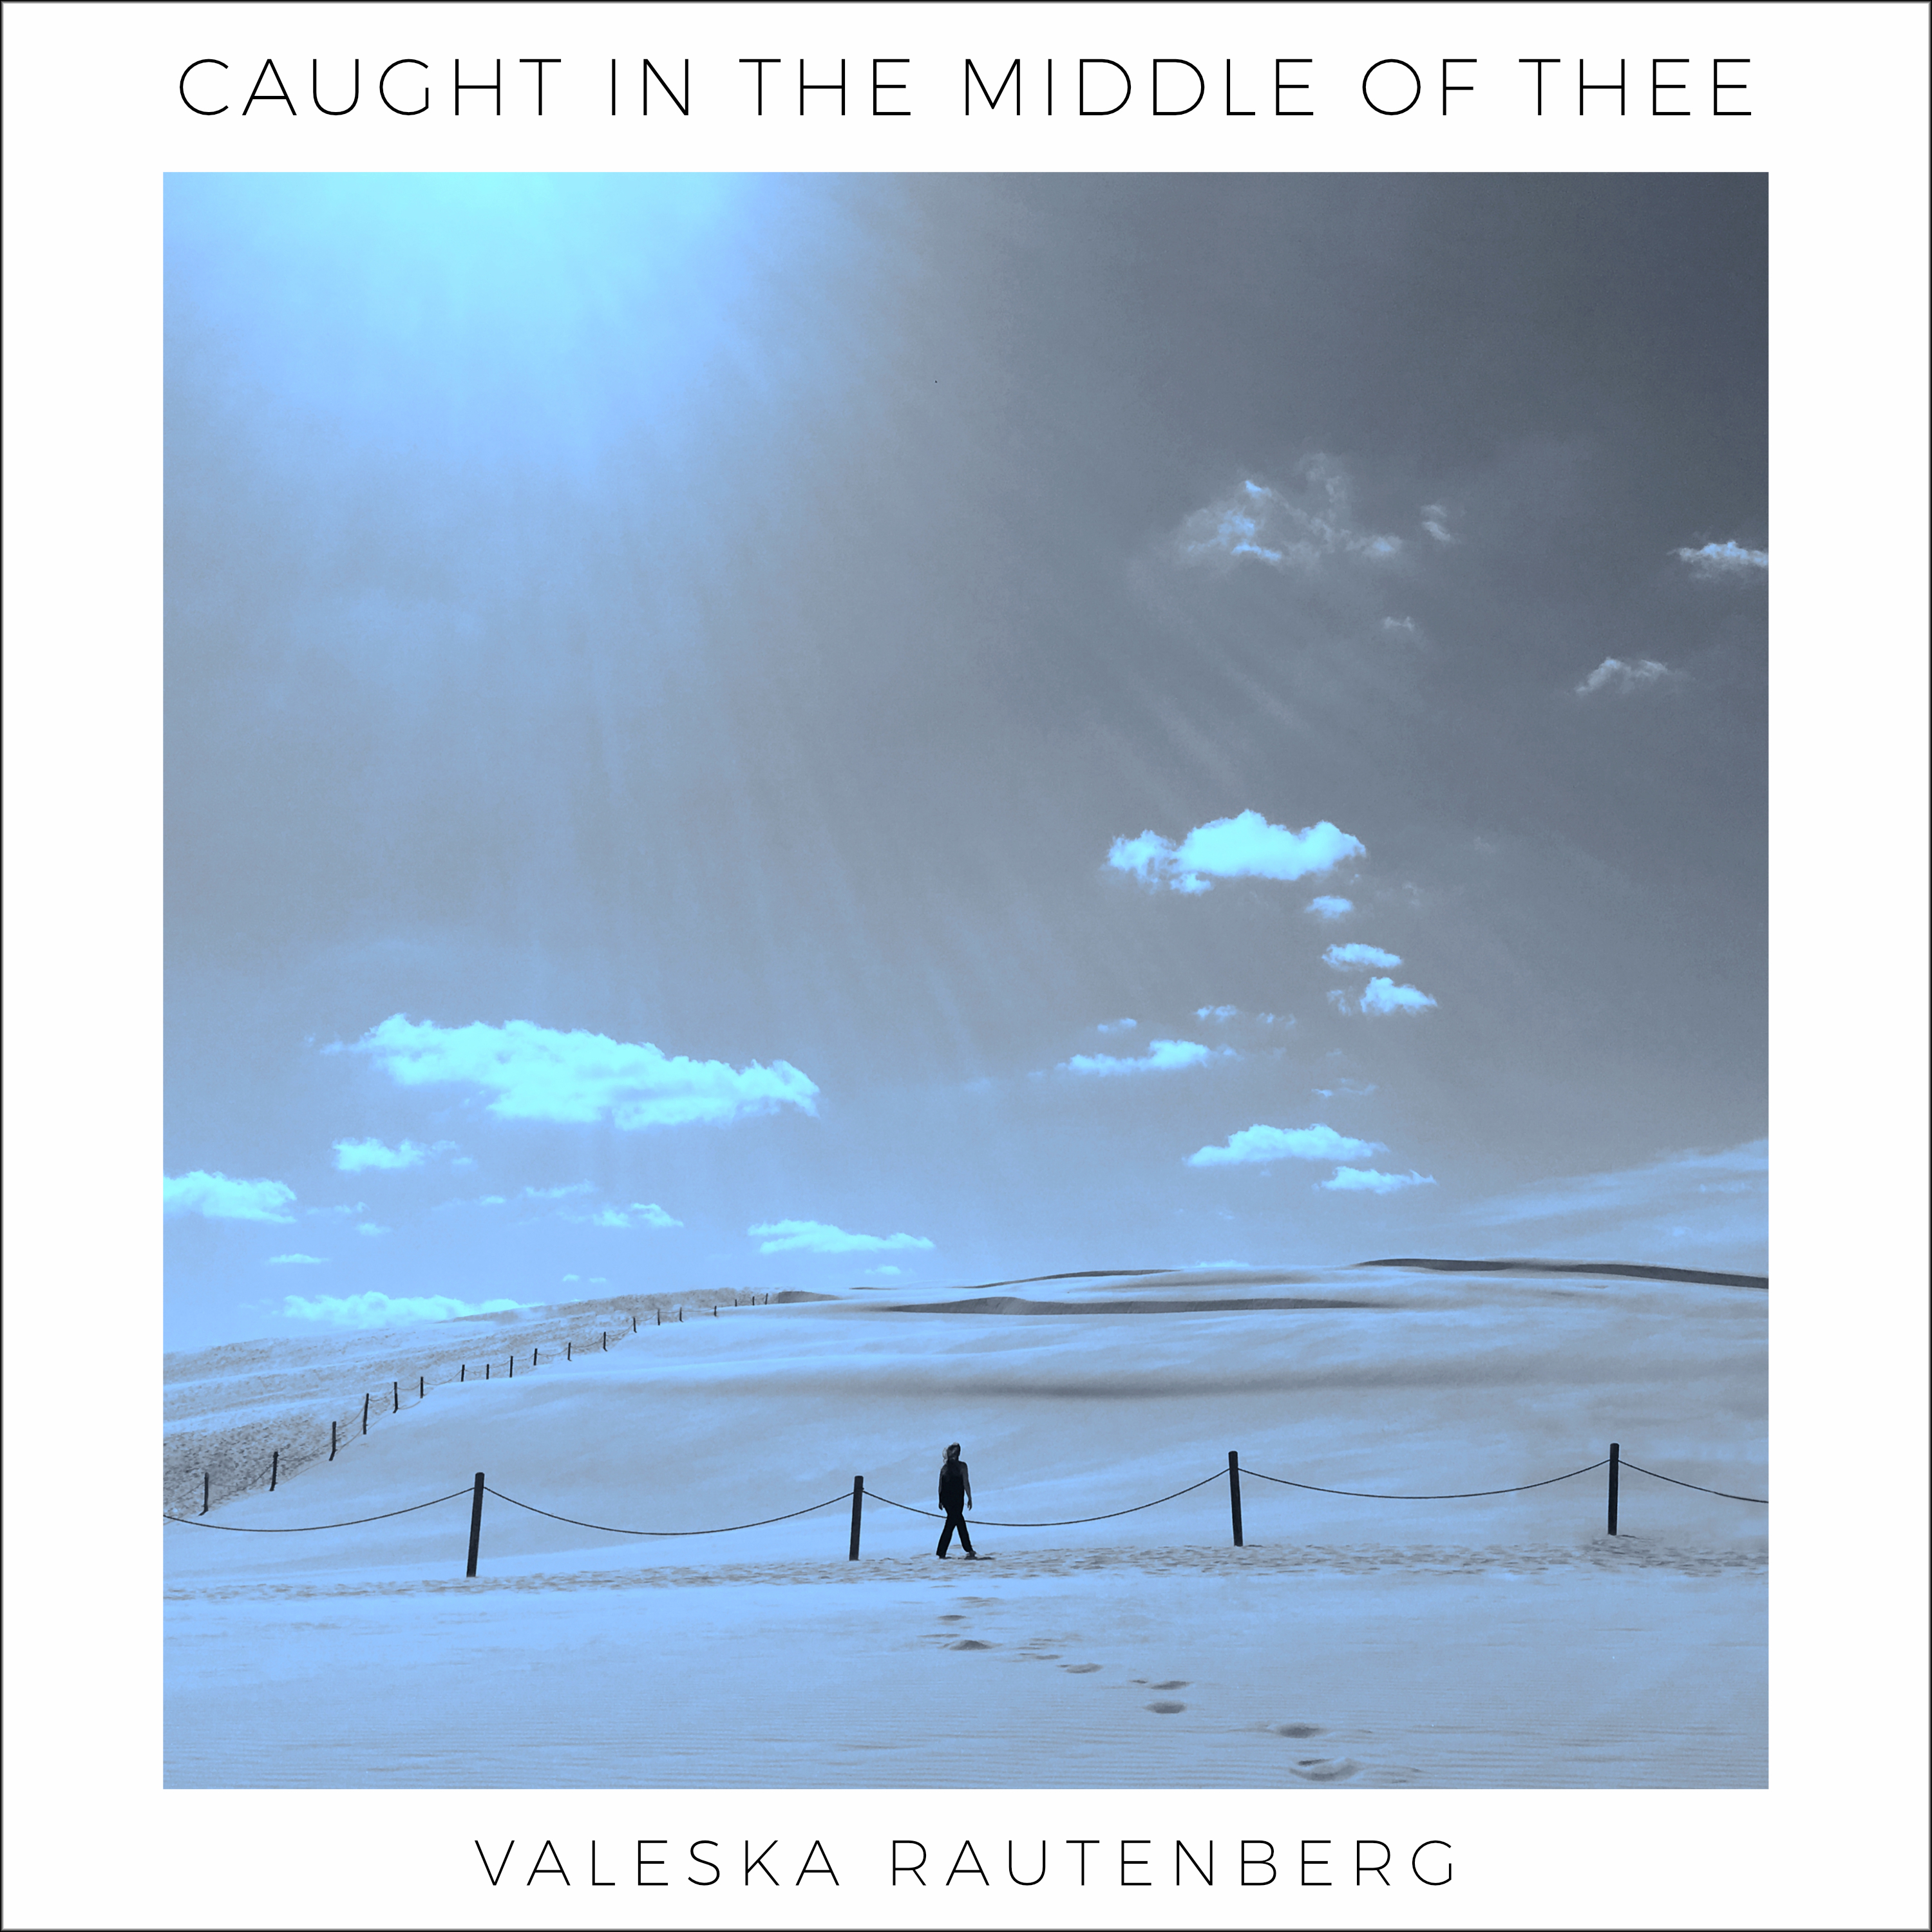 Caught In The Middle Of Thee - Valeska Rautenberg